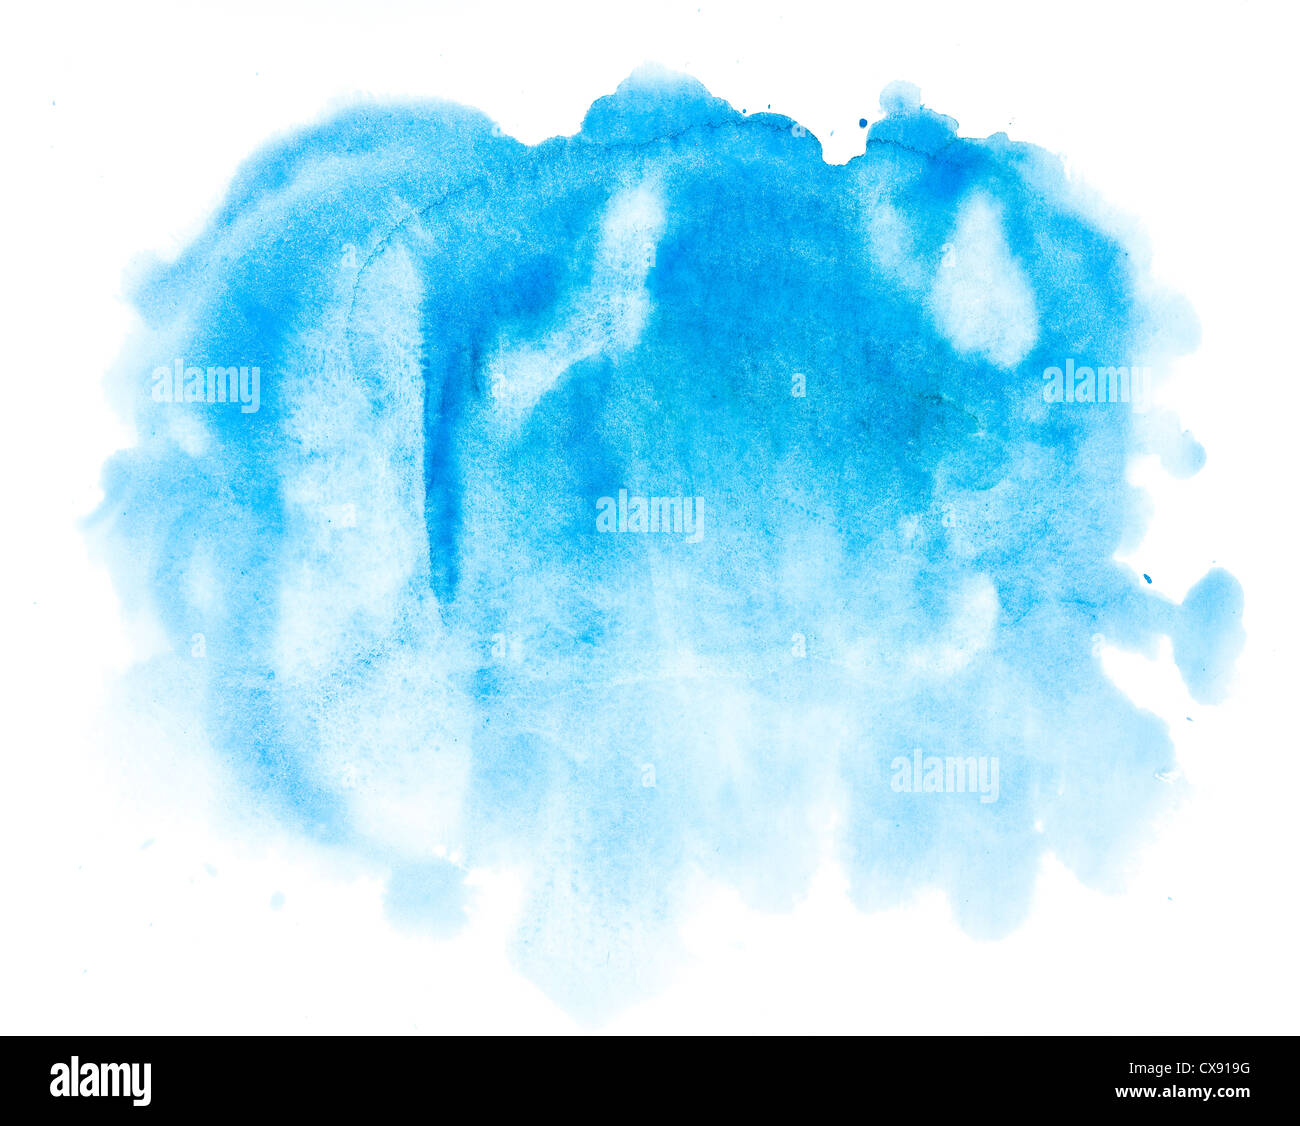 Résumé fond bleu aquarelle Photo Stock